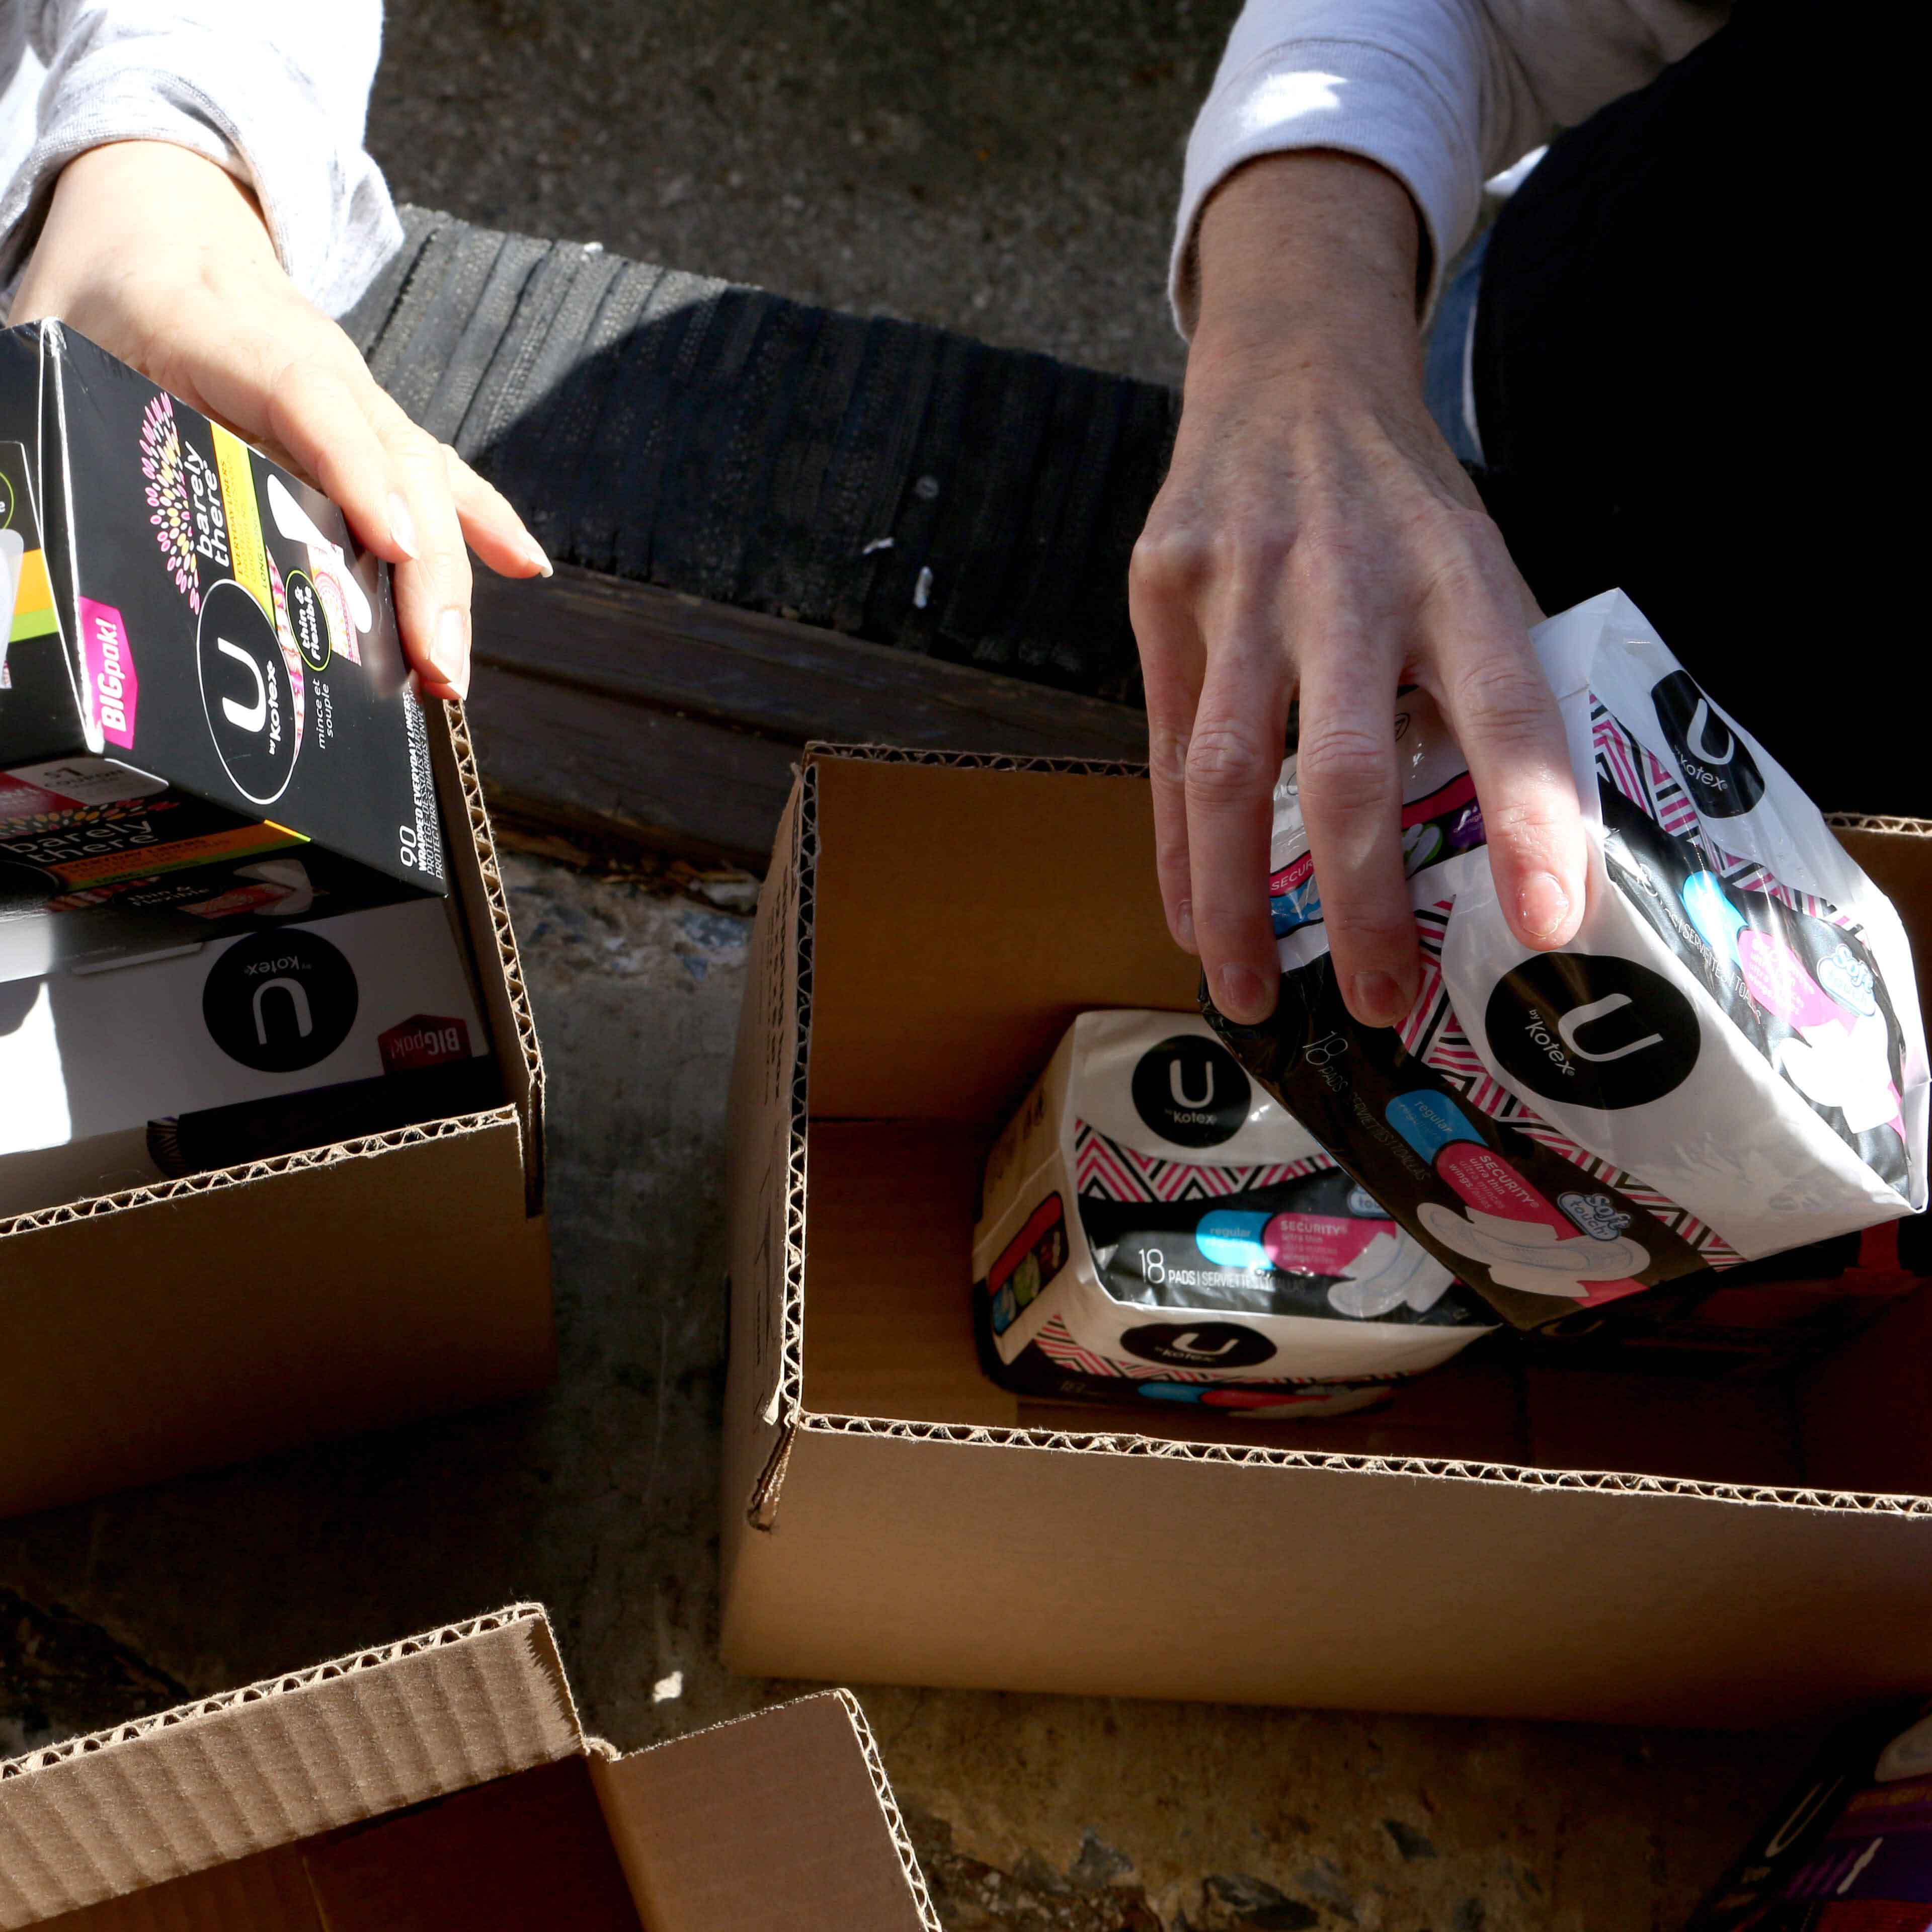 U by Kotex tampons, maxi pads, and liners are being packed to send to women in need